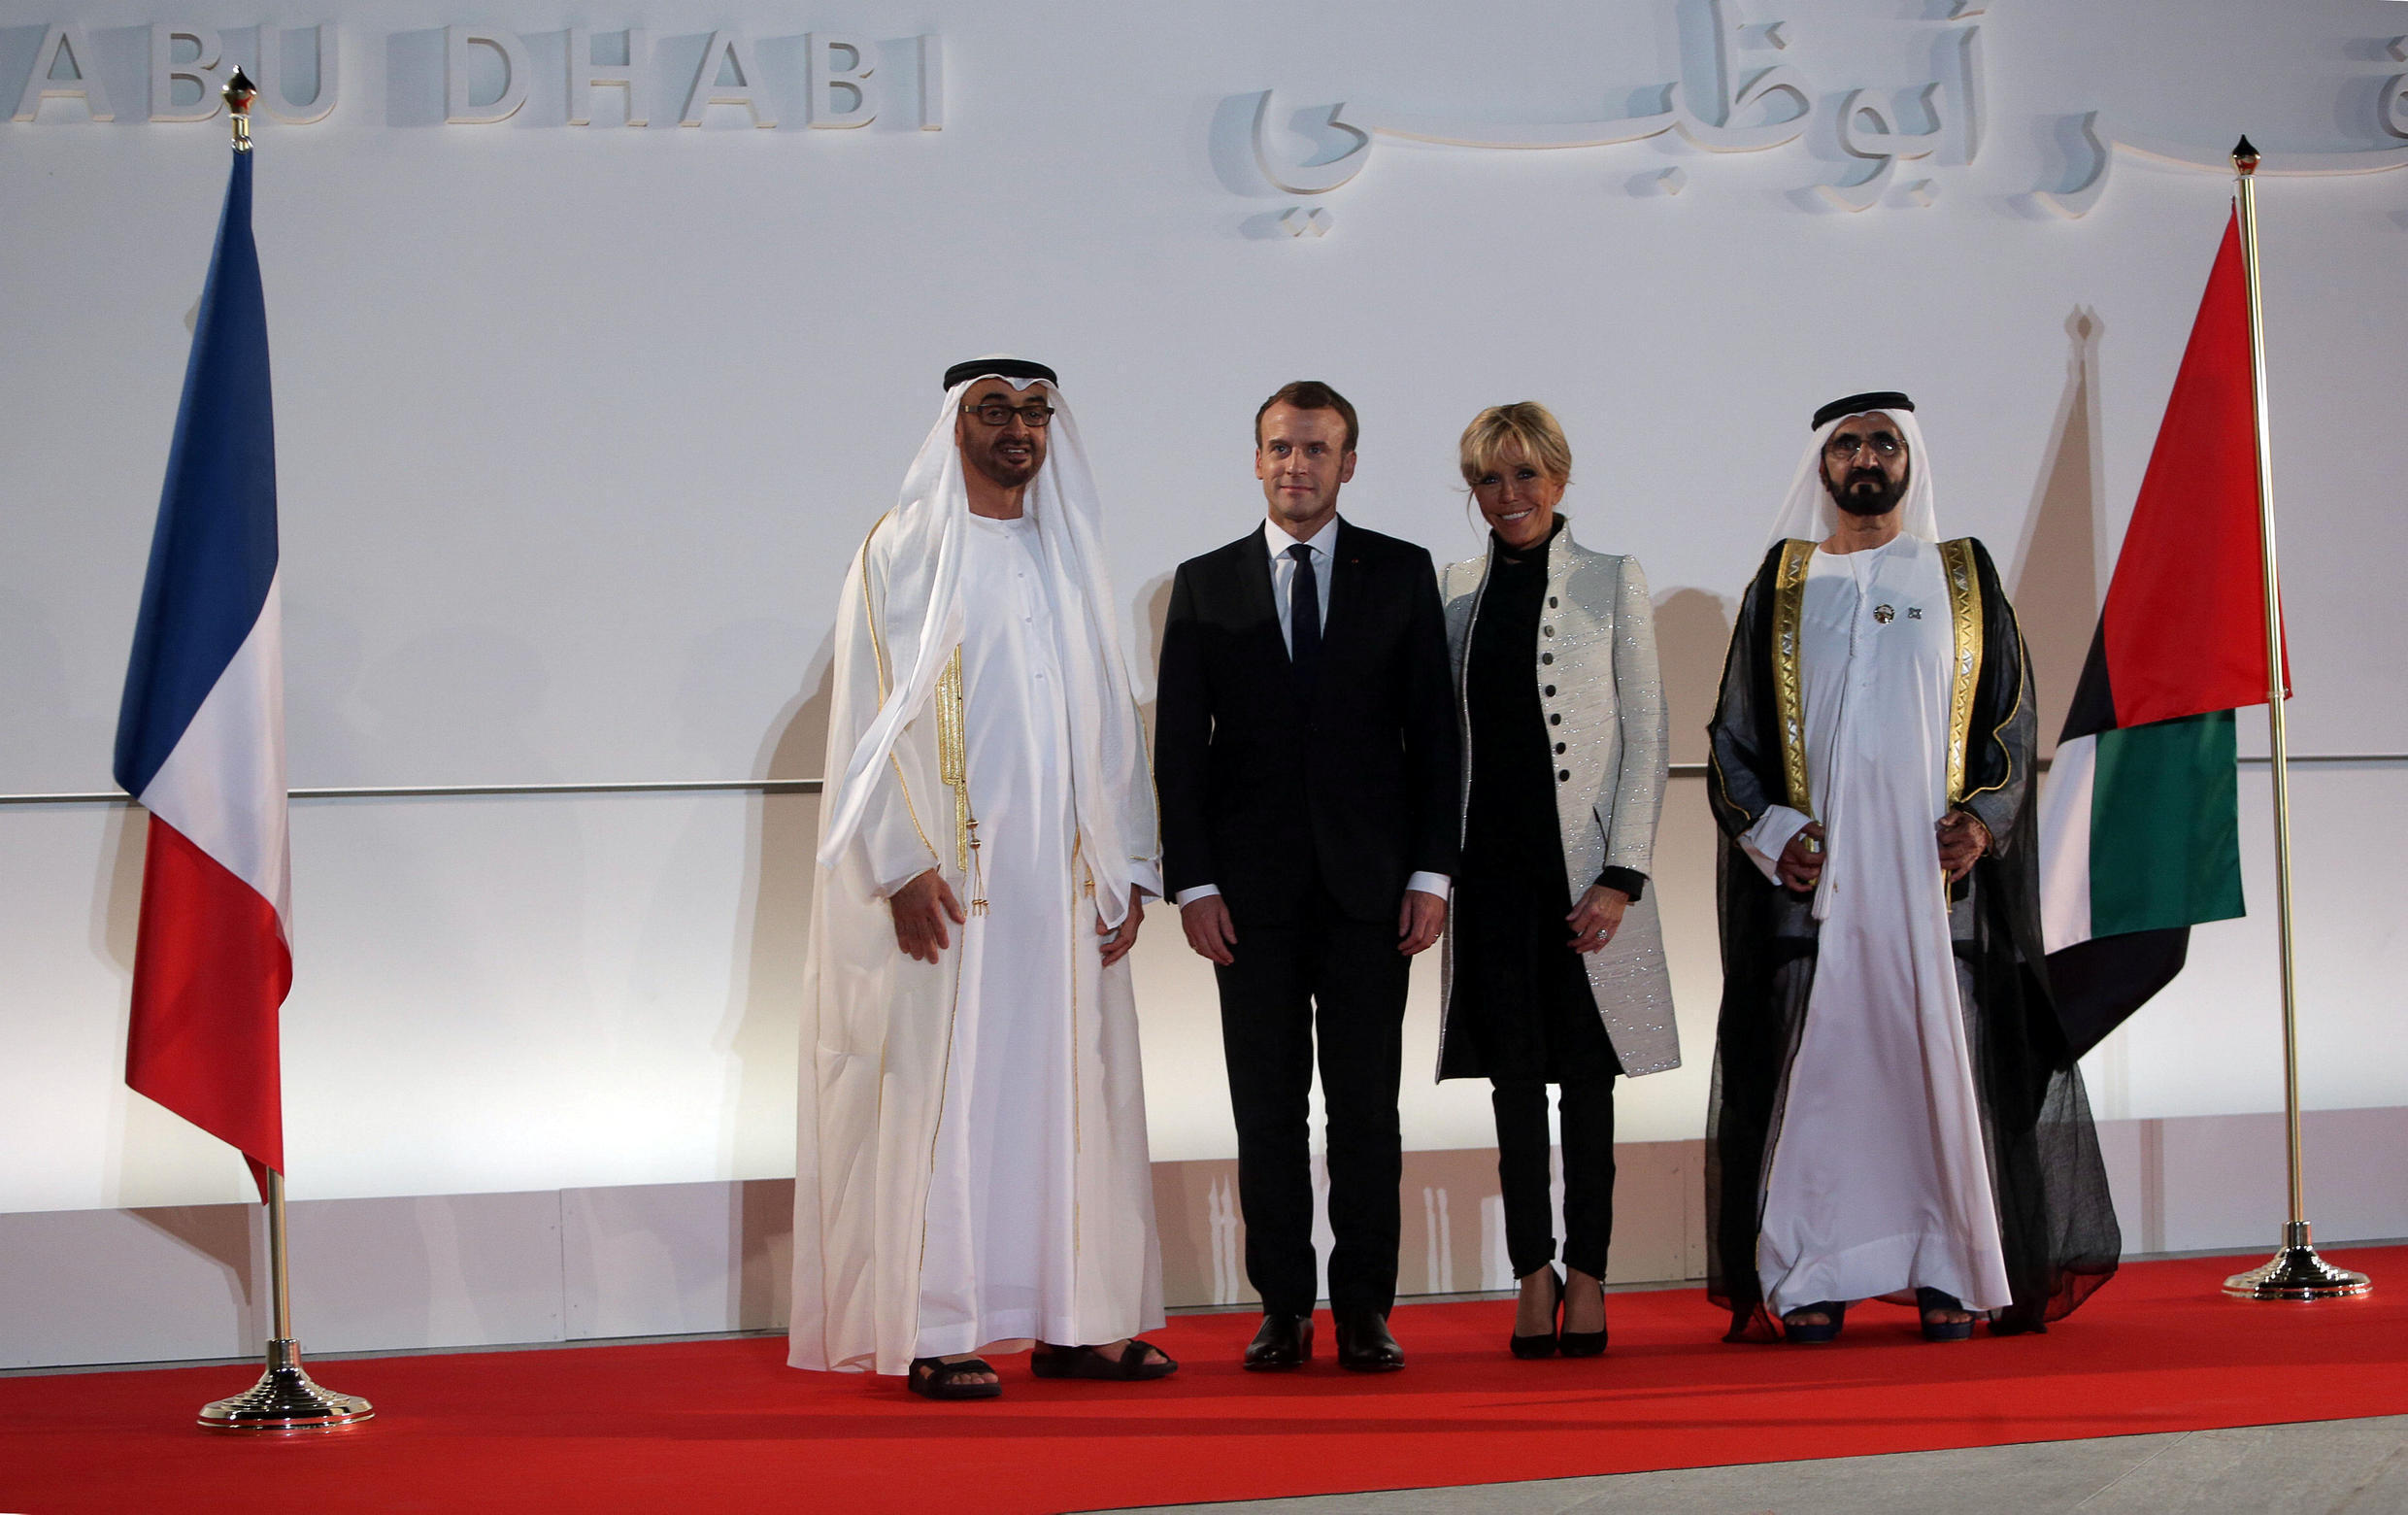 Abu Dhabi Crown Prince Sheikh Mohammed bin Zayed al-Nahyan with French President Emmanuel Macron and his wife at the Louvre Abu Dhabi on 8 November